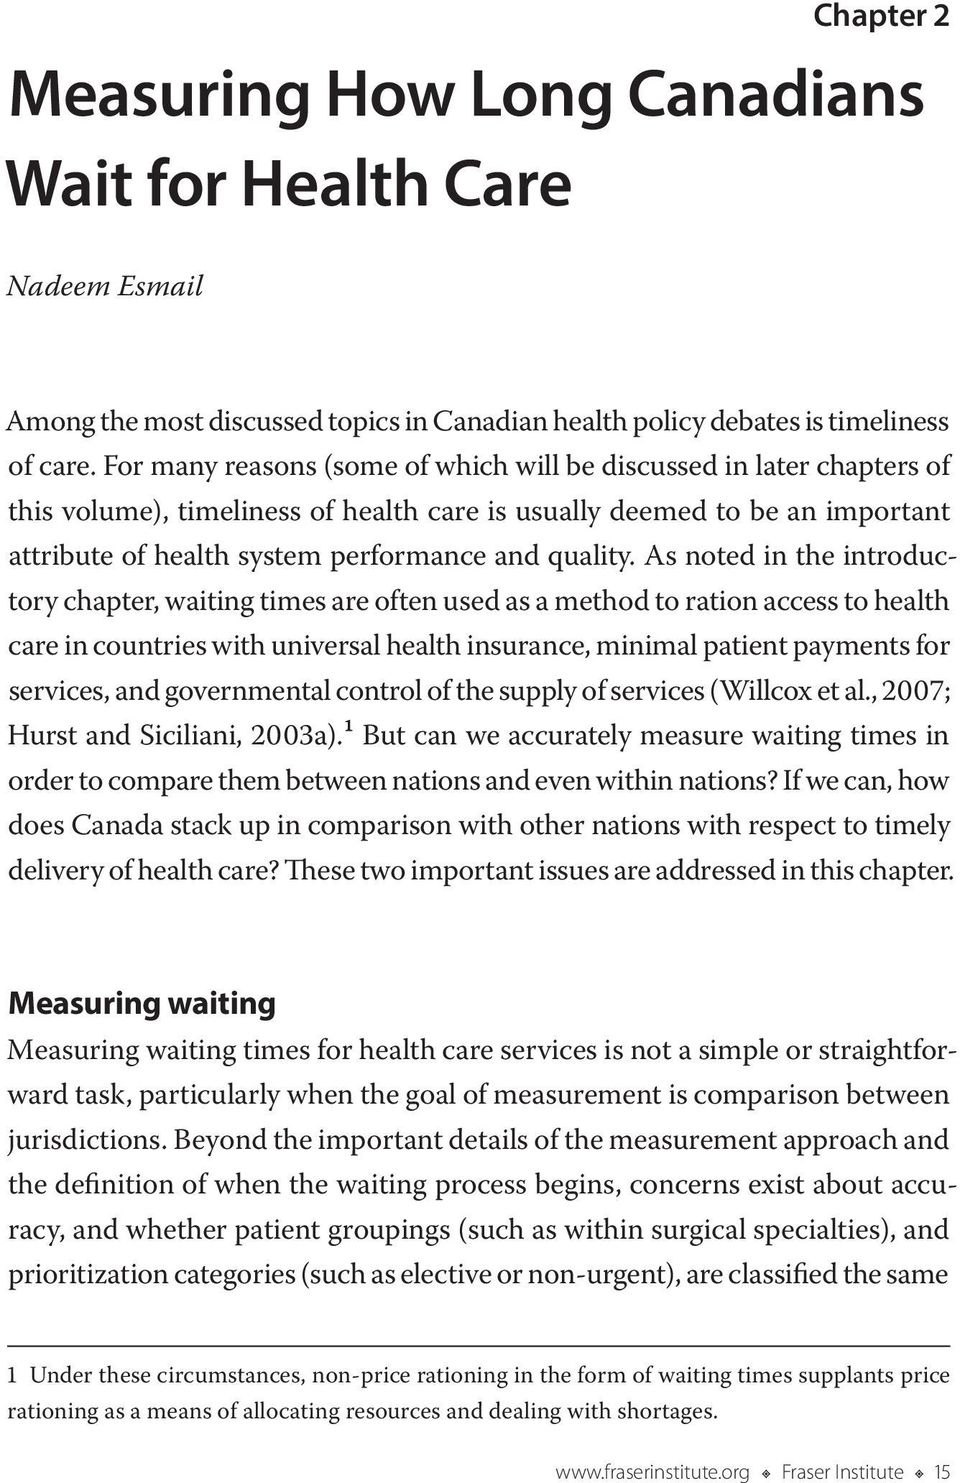 As noted in the introductory chapter, waiting times are often used as a method to ration access to health care in countries with universal health insurance, minimal patient payments for services, and